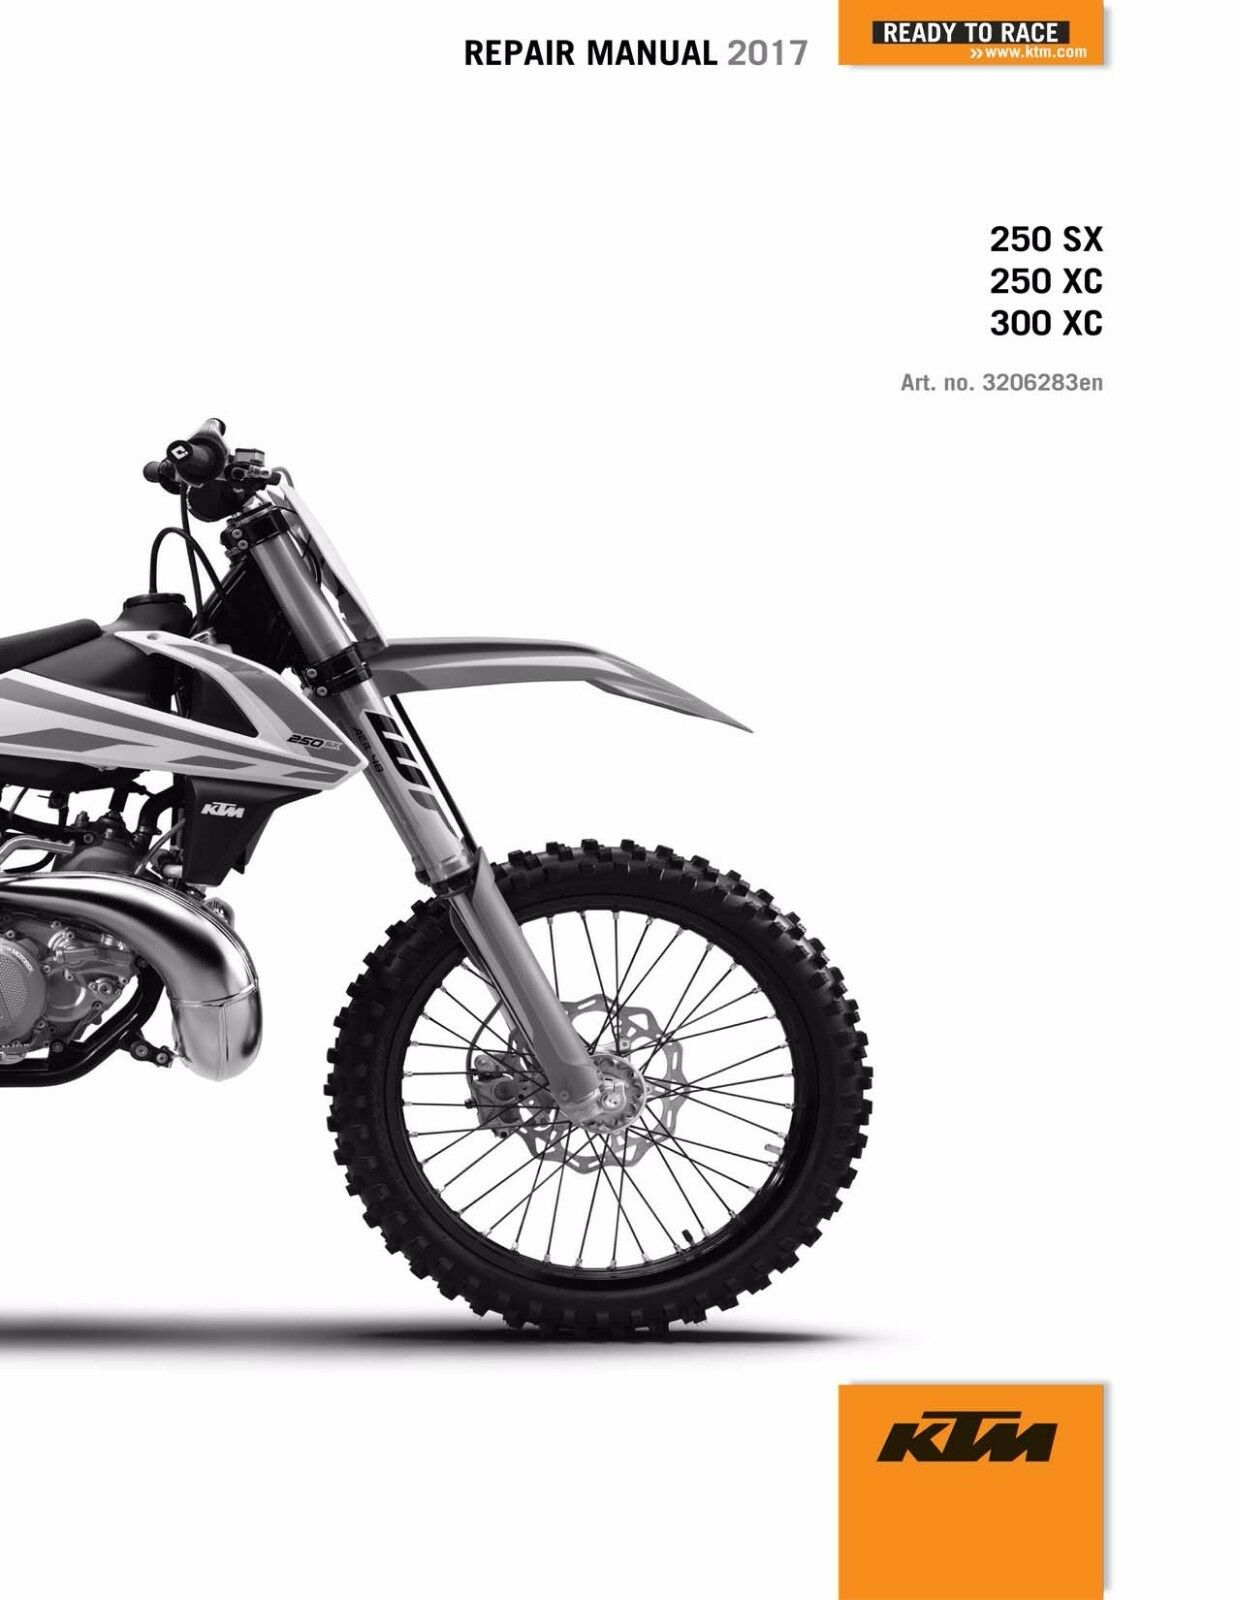 KTM Service Workshop Shop Repair Manual Book 2017 300 XC 1 of 12Only 1  available ...